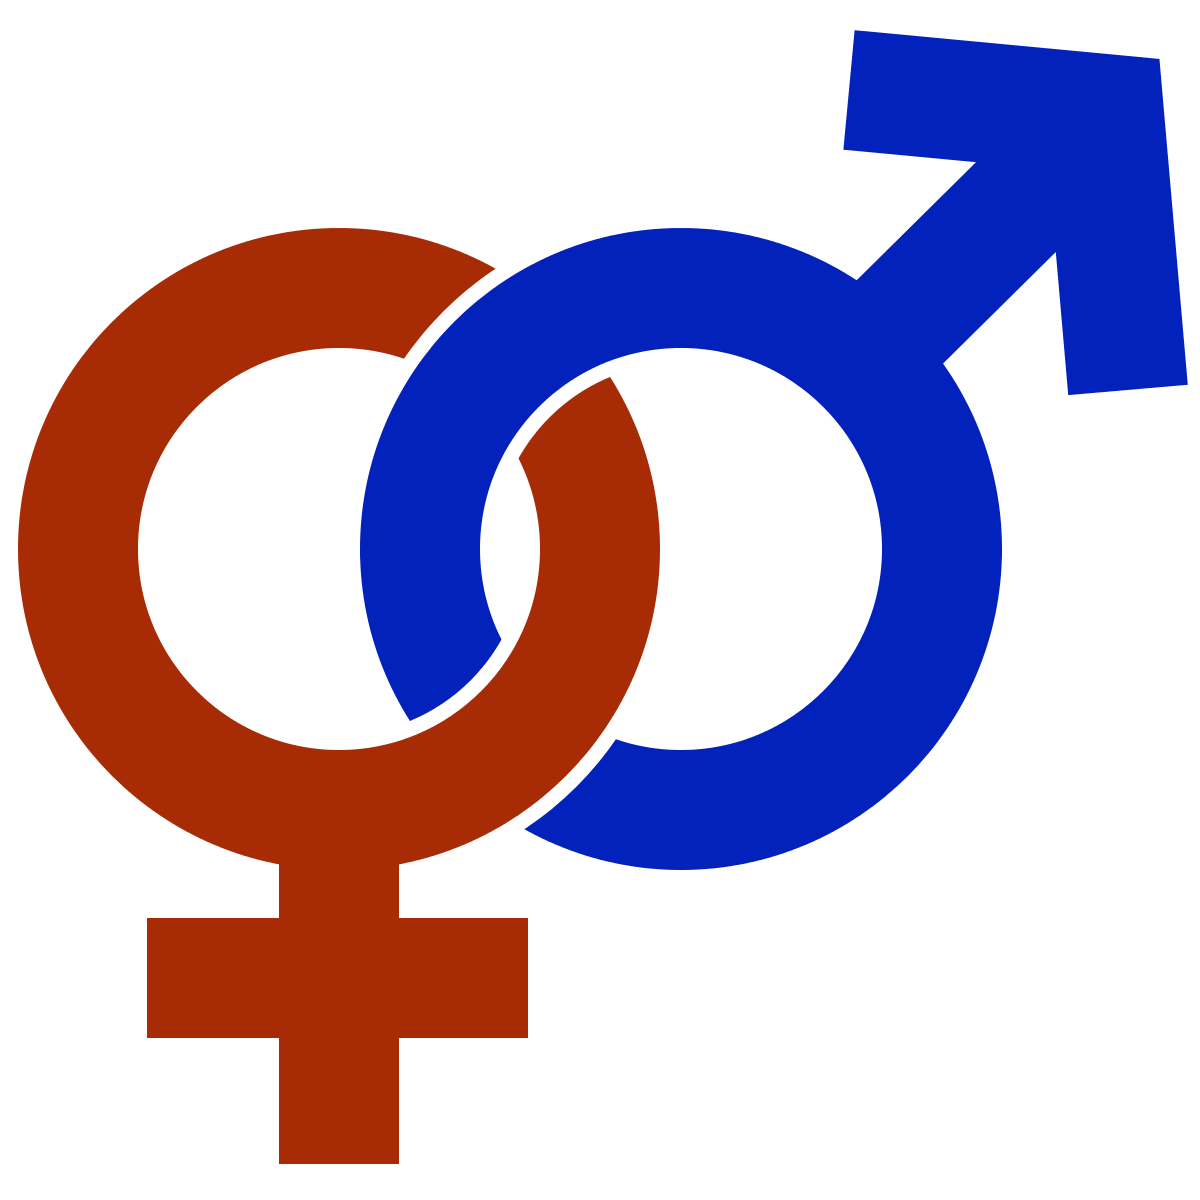 Clipart definition case law. Gender wikipedia